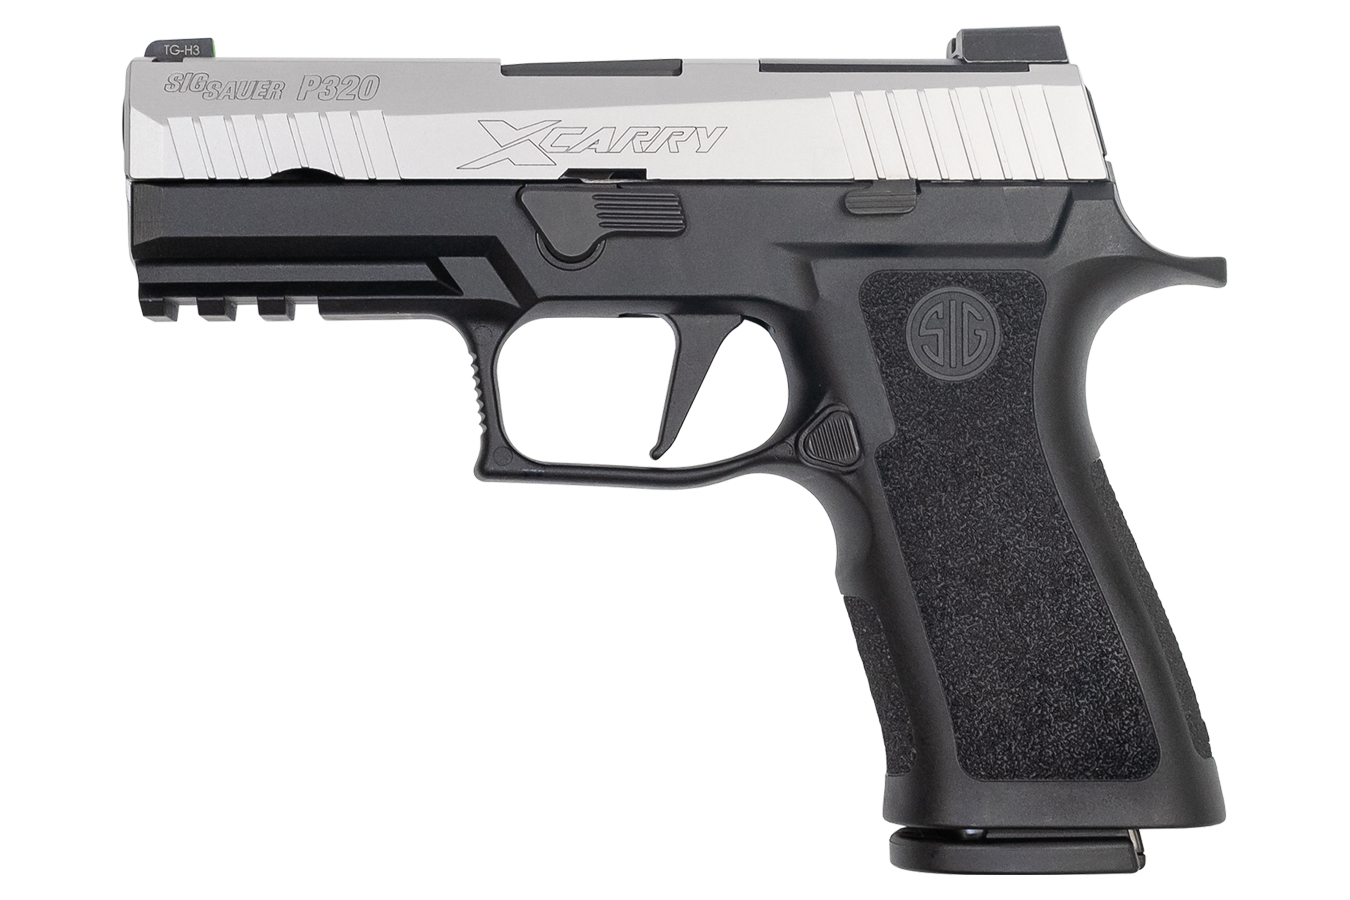 No. 3 Best Selling: SIG SAUER P320 X-CARRY 9MM BLK POLYMER FRAME STAINLESS SLIDE 17 ROUND MAGS